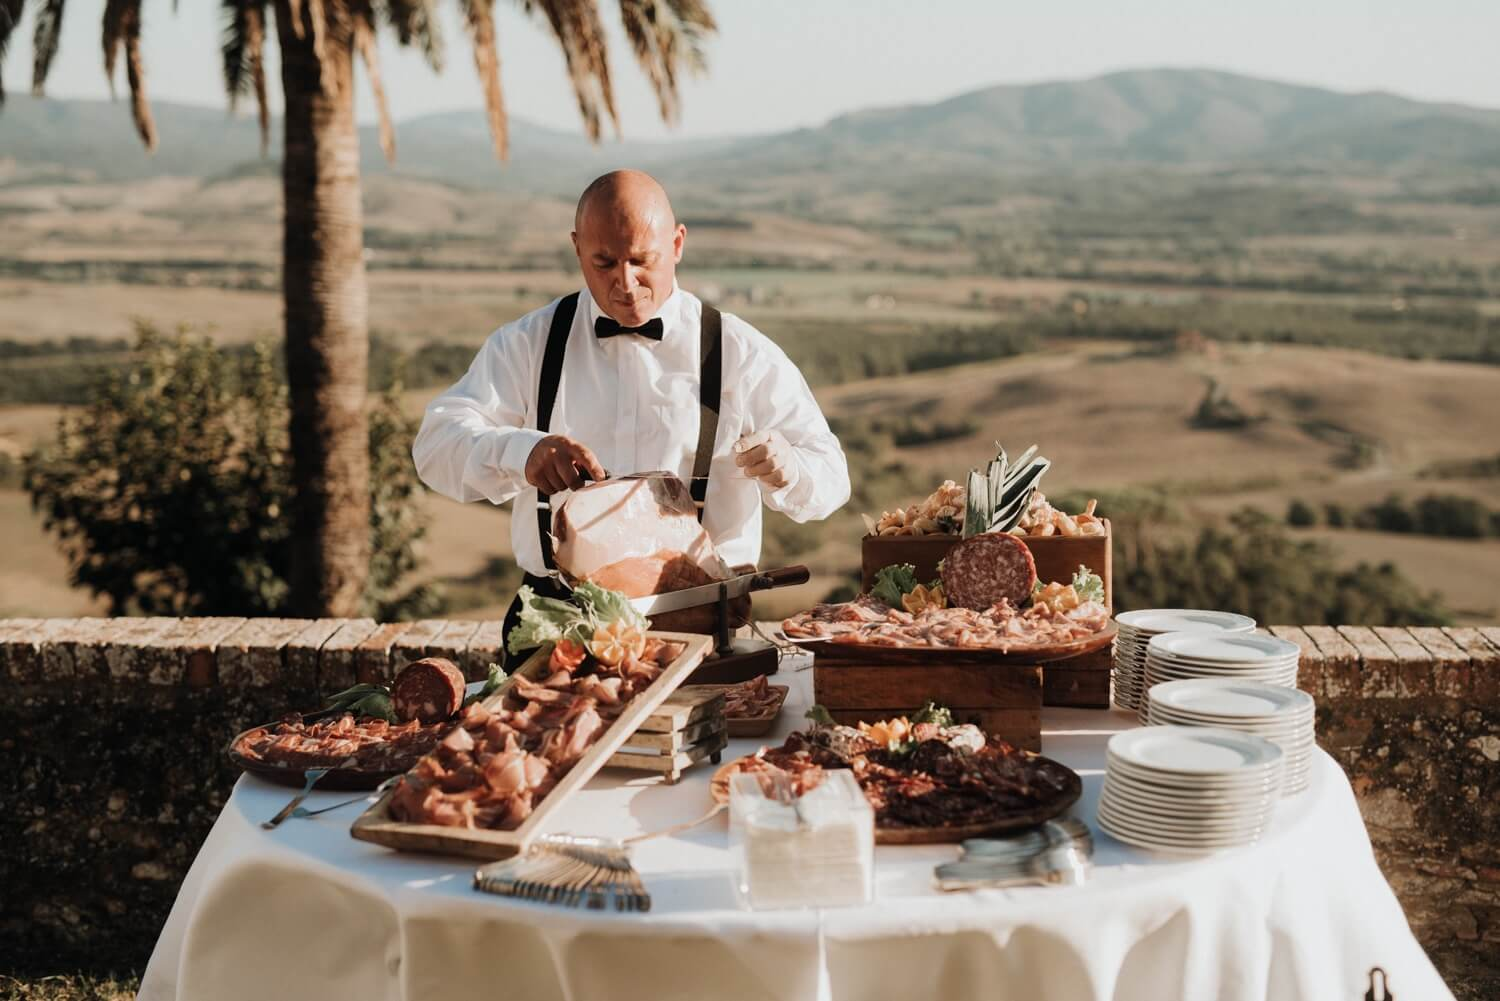 Welcome dinner for your destination wedding in Tuscany, Florence, Siena, Chianti. Giulia Alessandri Wedding Planner, Wedding Design & Wedding Coordination in Tuscany.